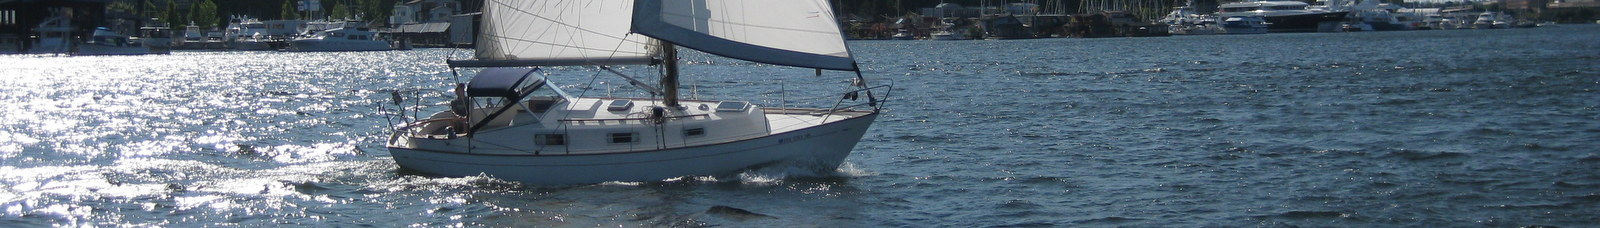 Lumpytrout Wikivoyage Page Banner Washington Lake Washington Sailboat.JPG